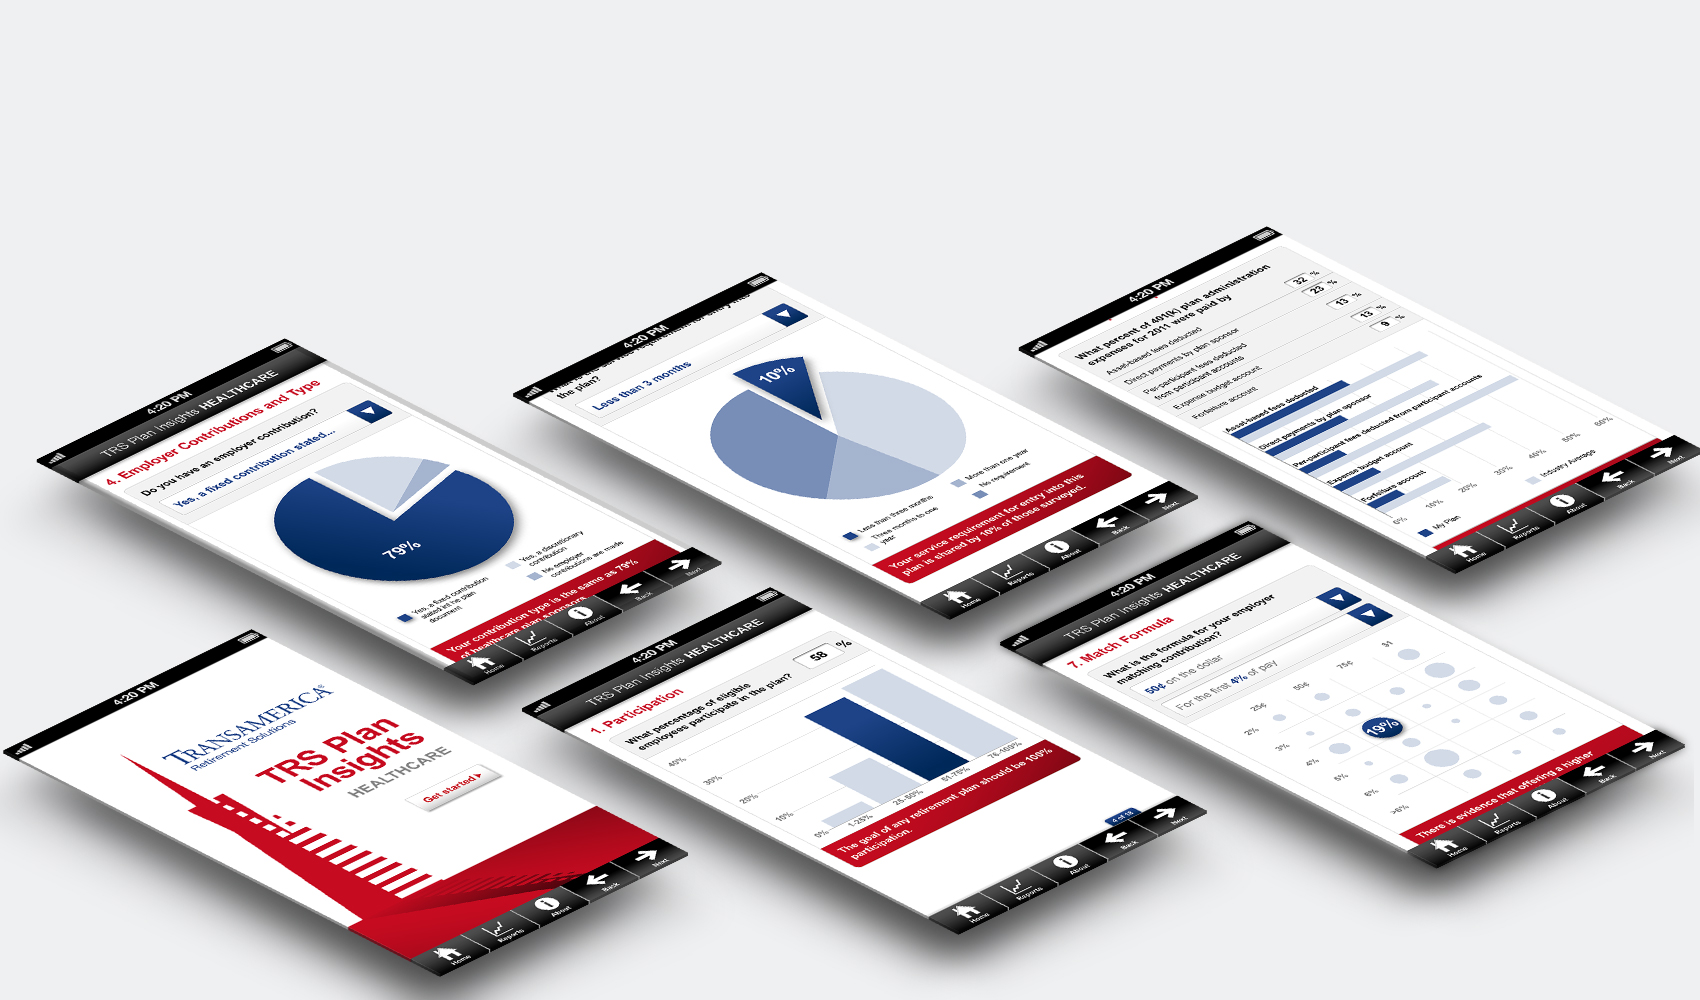 Vanguard - Mobile Application Development for Transamerica